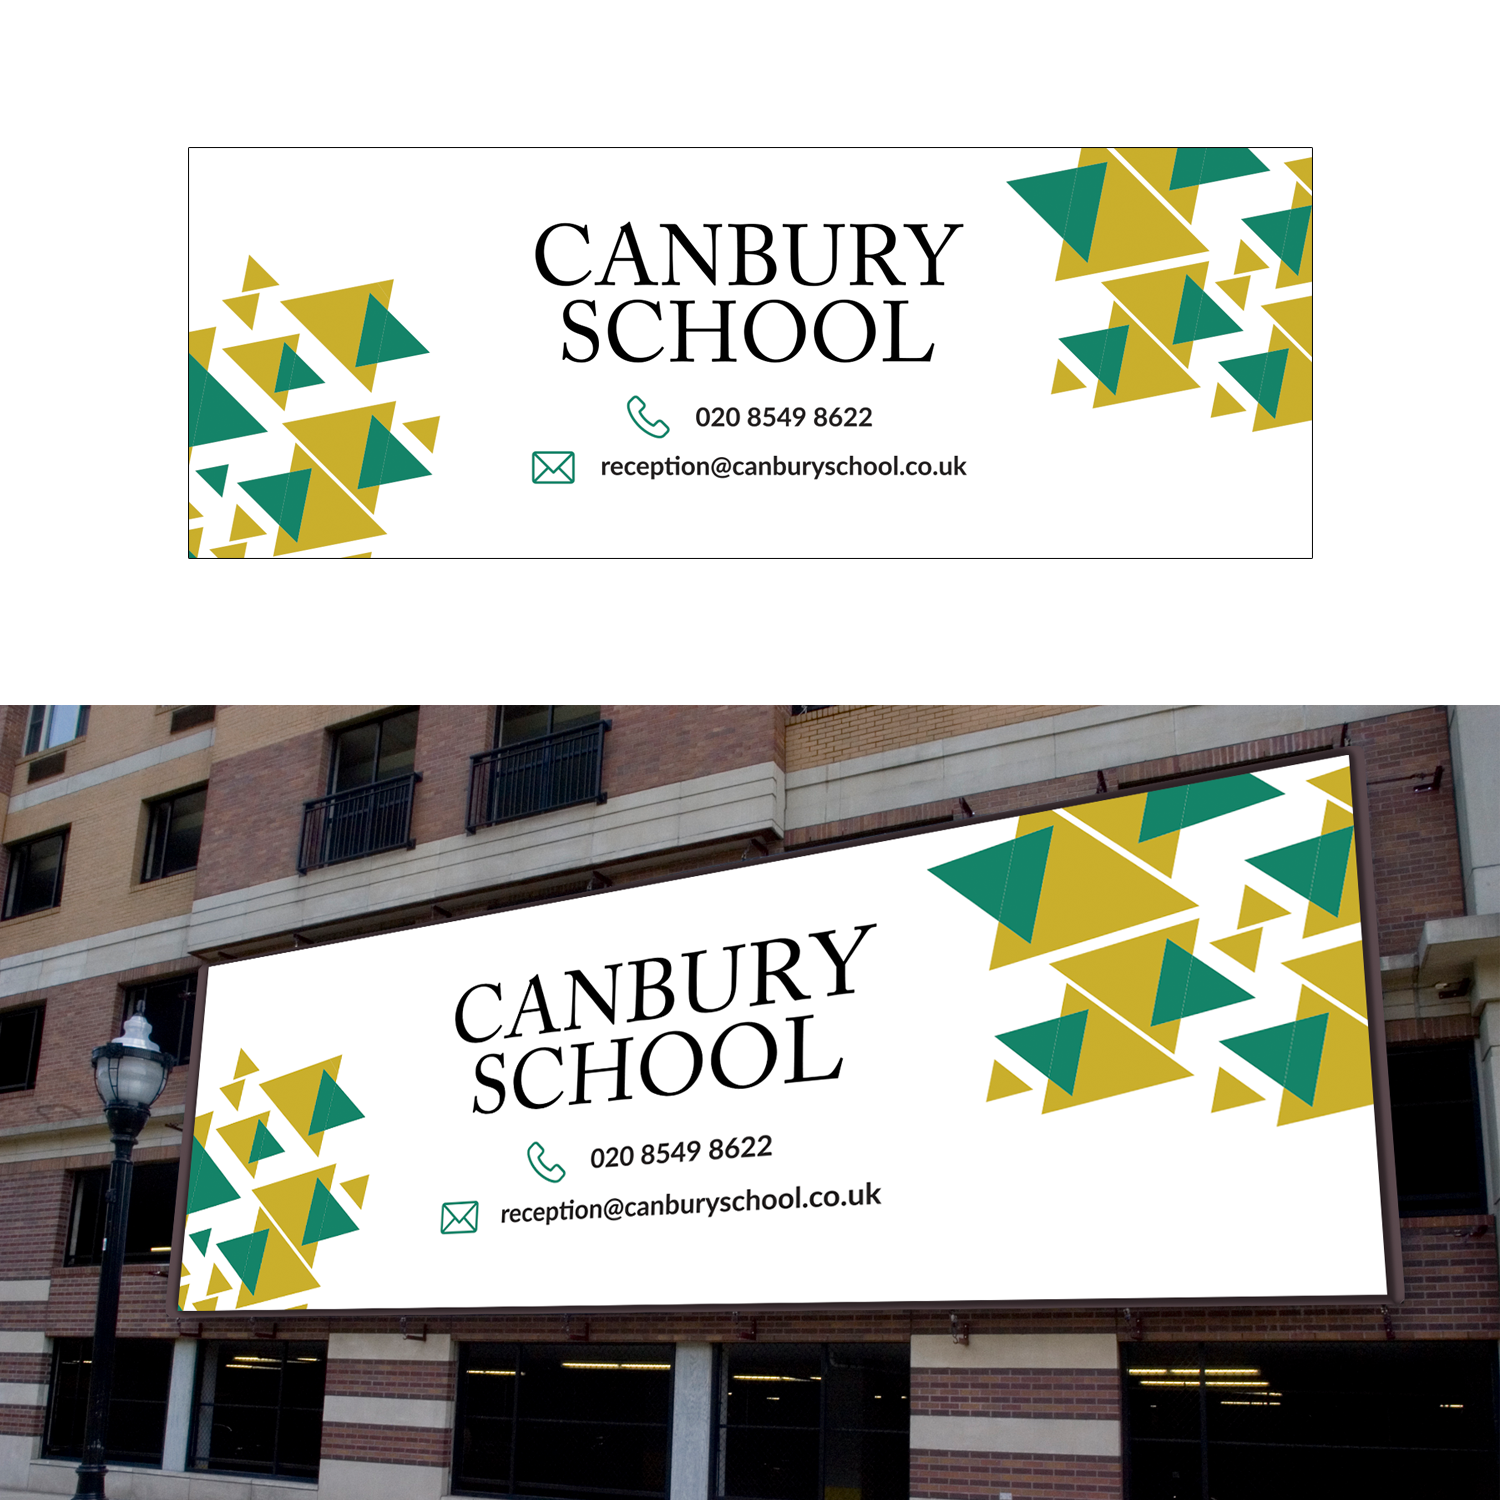 Modern Professional Education Banner Ad Design For Canbury School By Franb Design 17874404